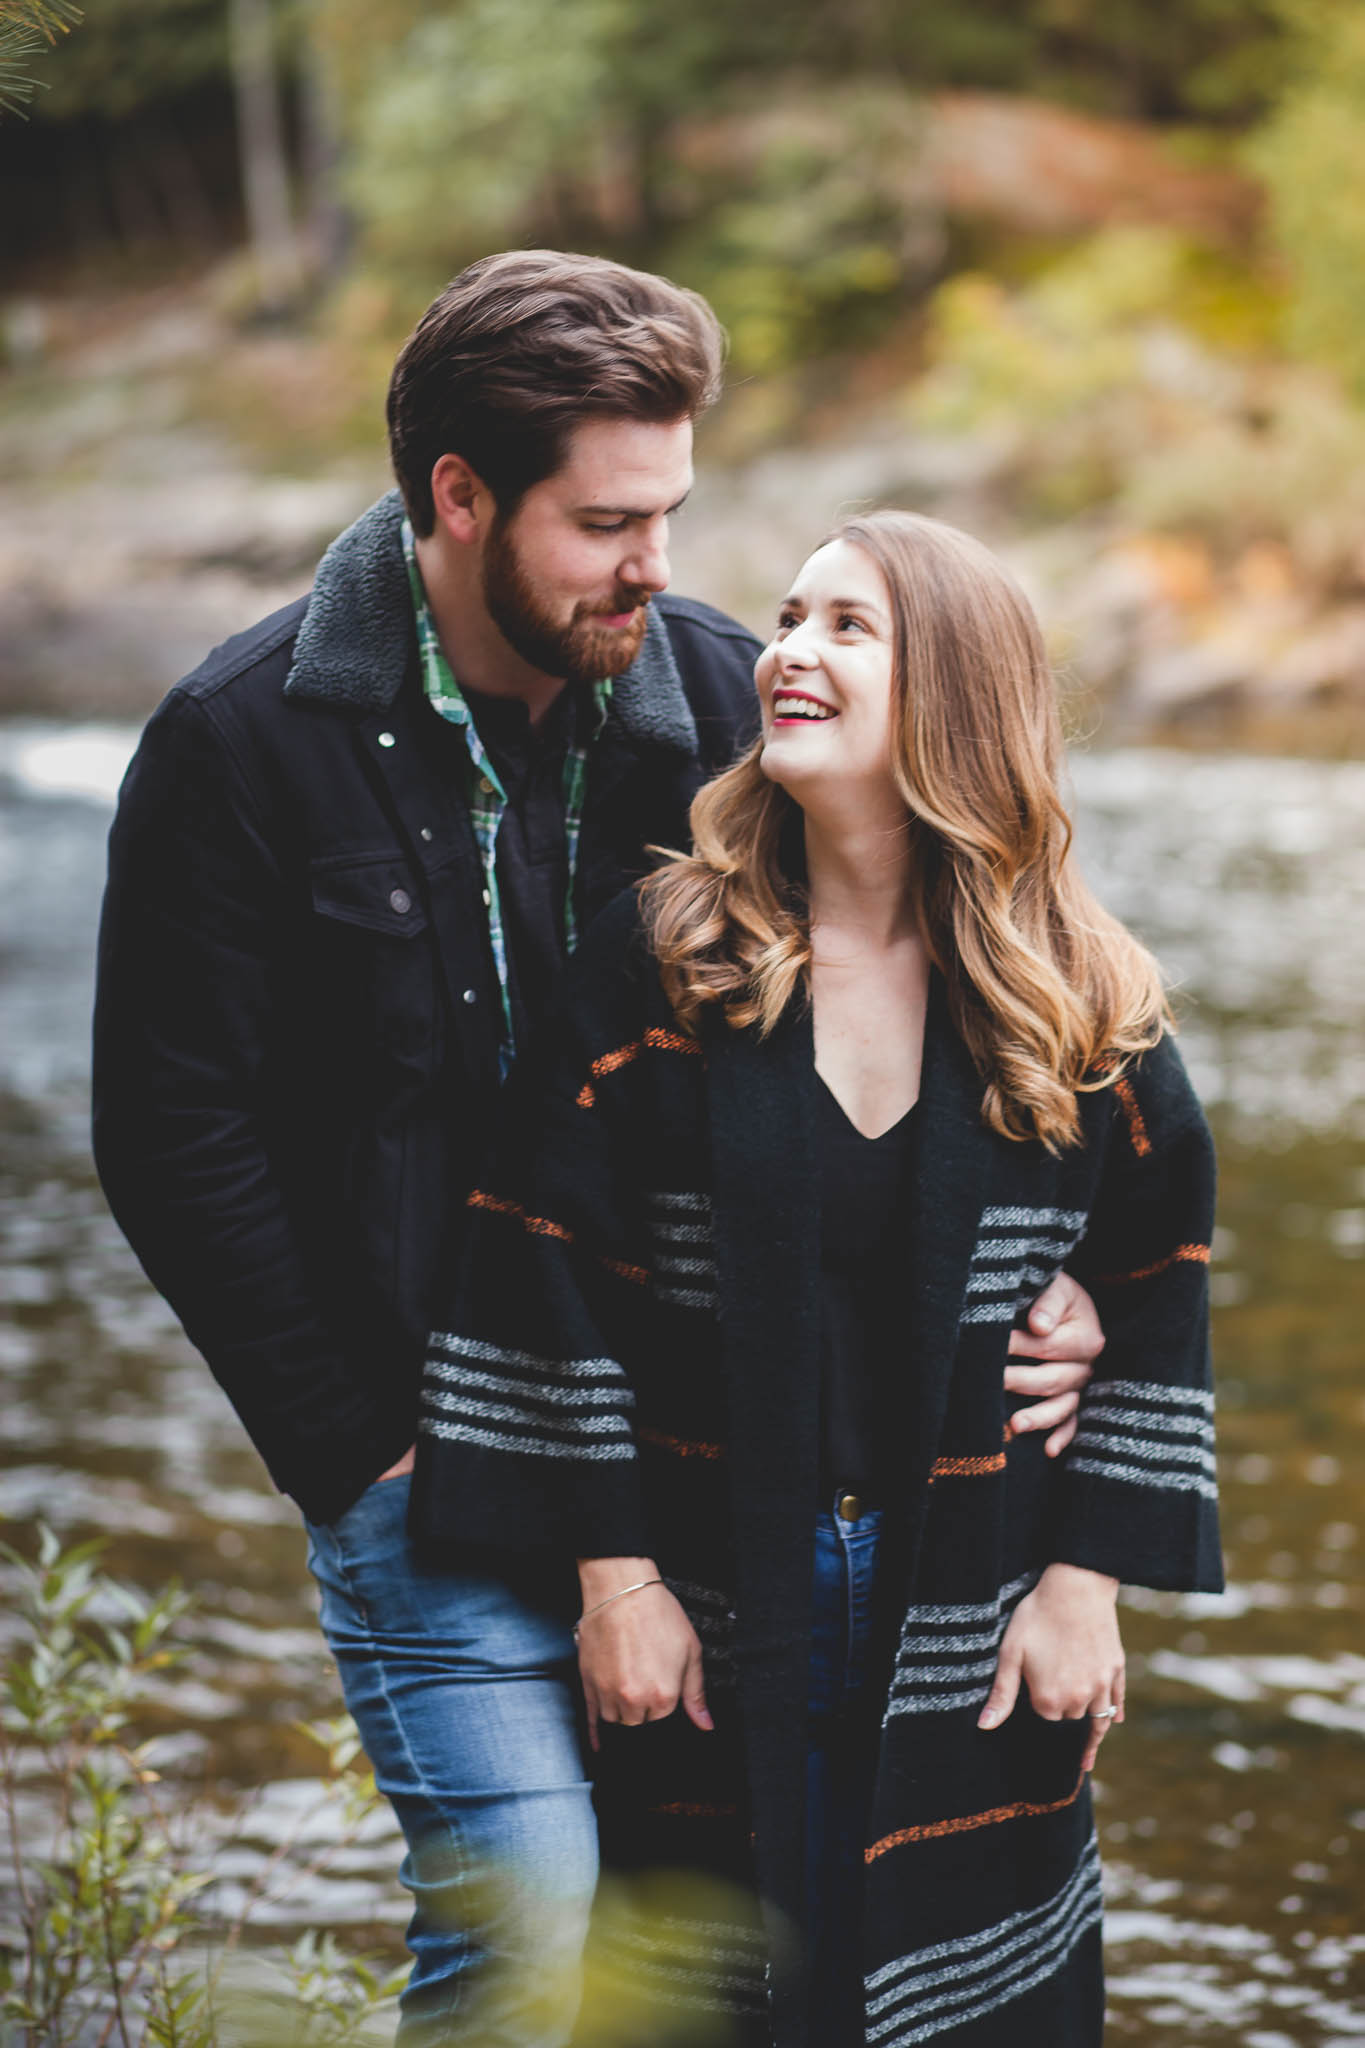 Amy D Photography- Fall Engagement Session- Fall Wedding- Engagement Session Poses- Engagement Poses- Wedding Photography Barrie-Fall Engagement  (55 of 90).jpg